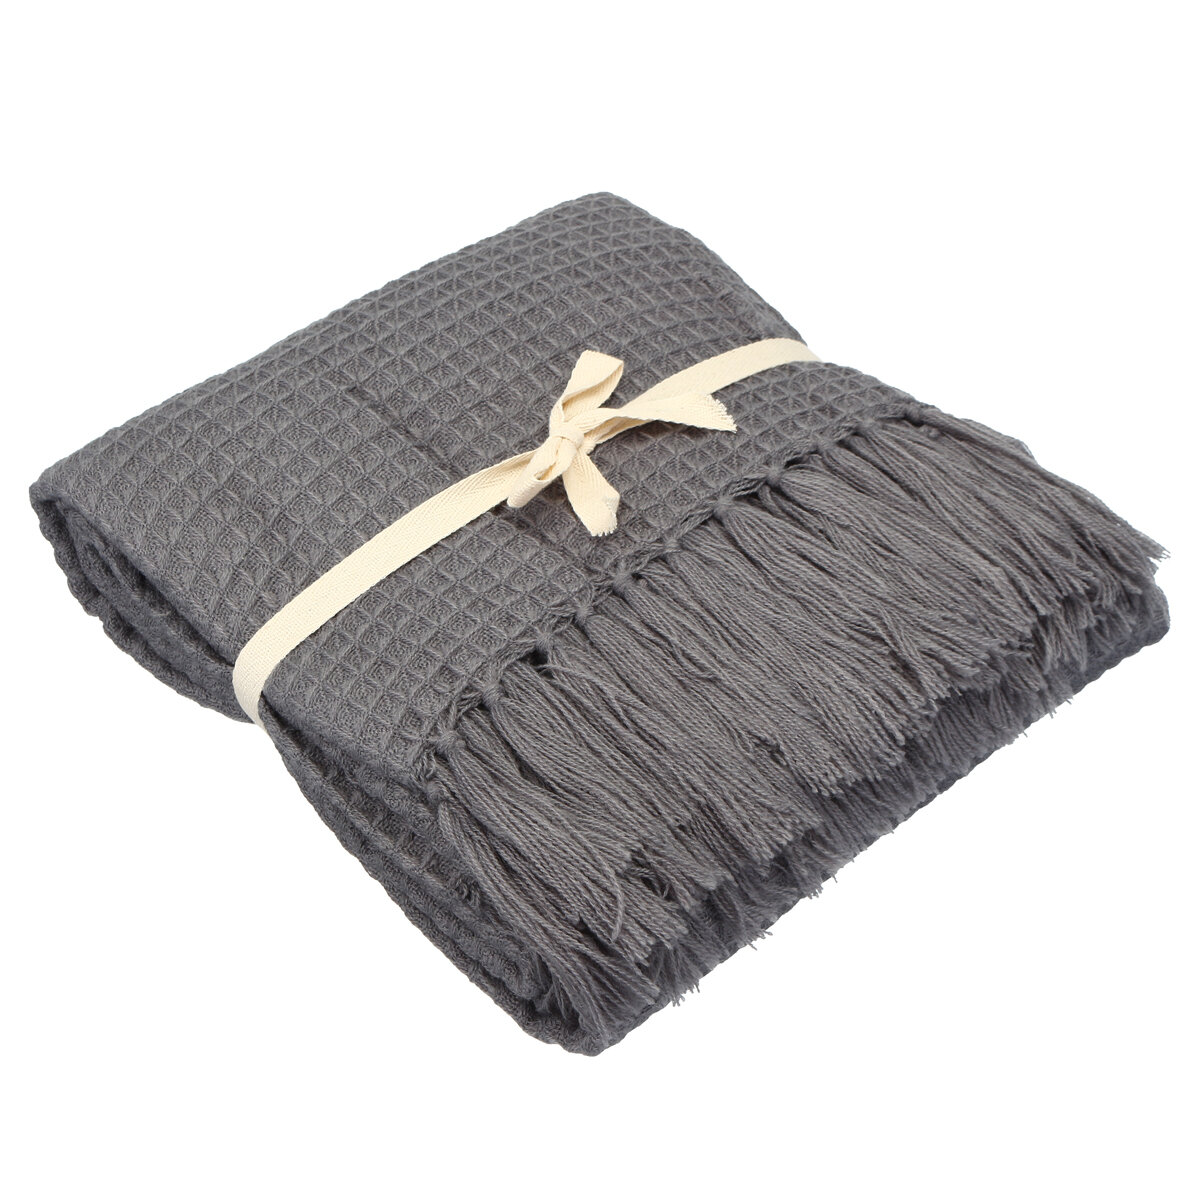 Soft Knitted Throw Blankets Bed Sofa Couch Decorative Fringe Waffle Pattern - 1